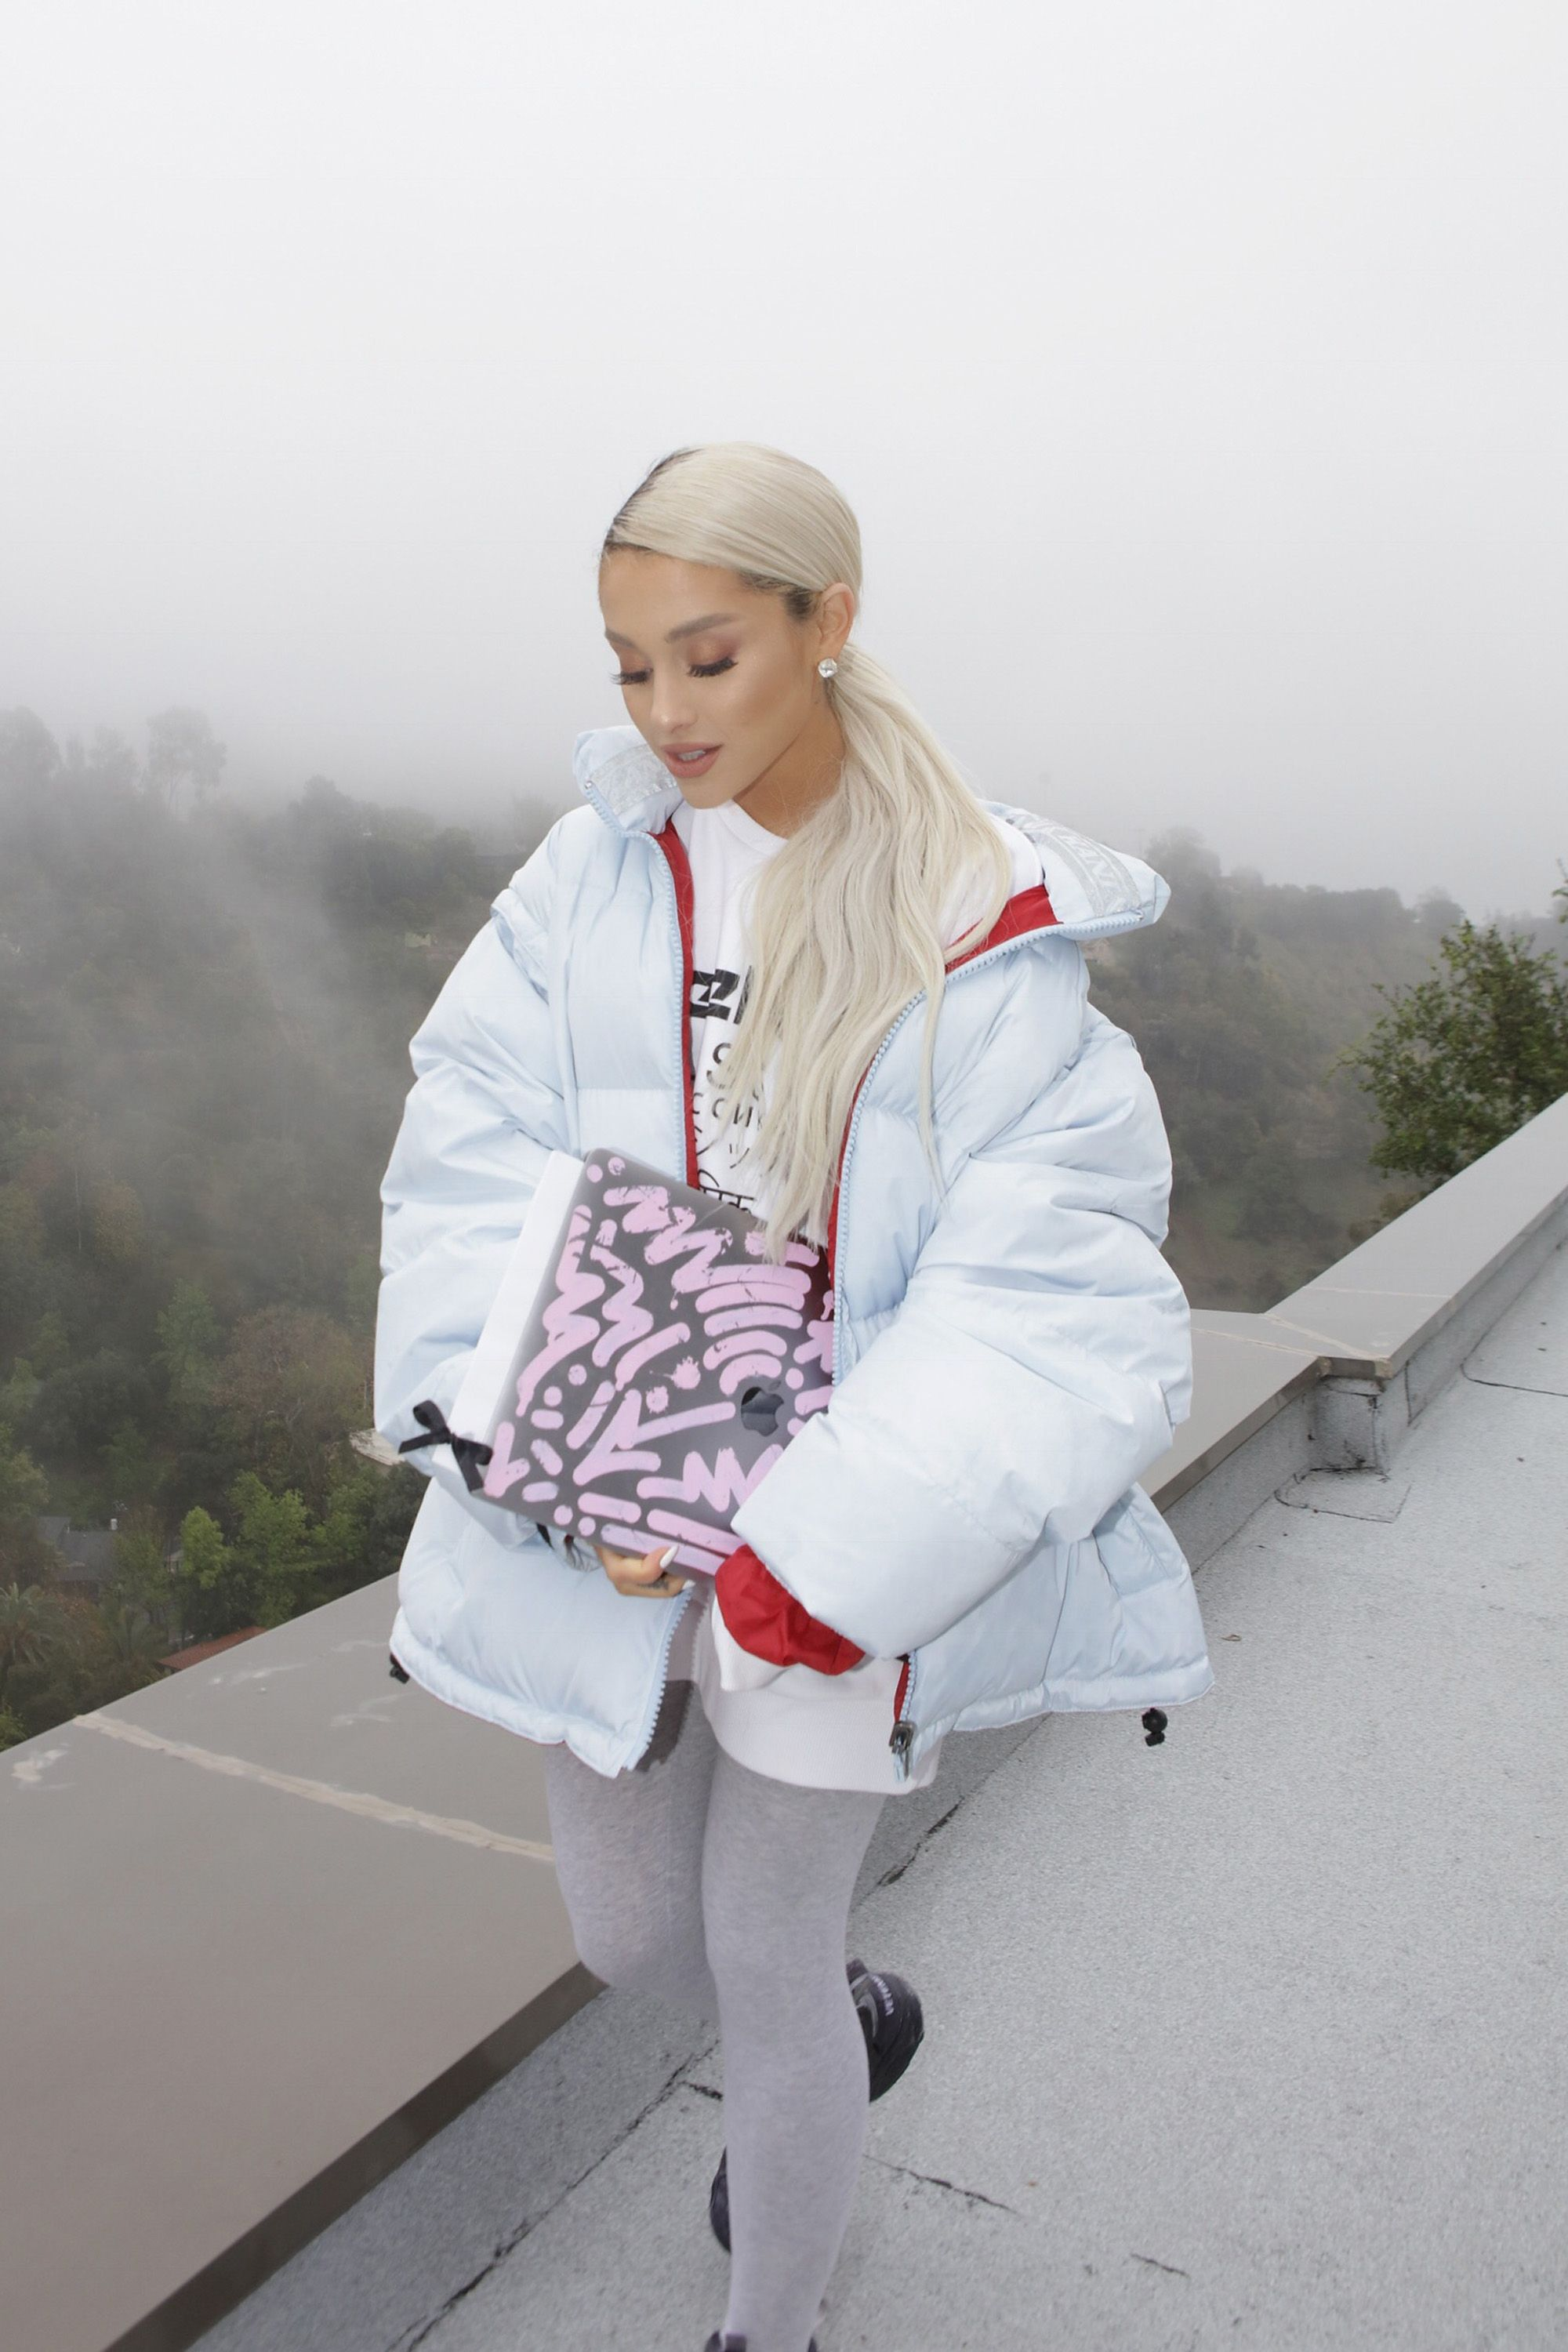 Ariana Grande Responds to Claims She Appropriated Japanese Culture on  Twitter After Misspelled Tattoo 86fb93f98